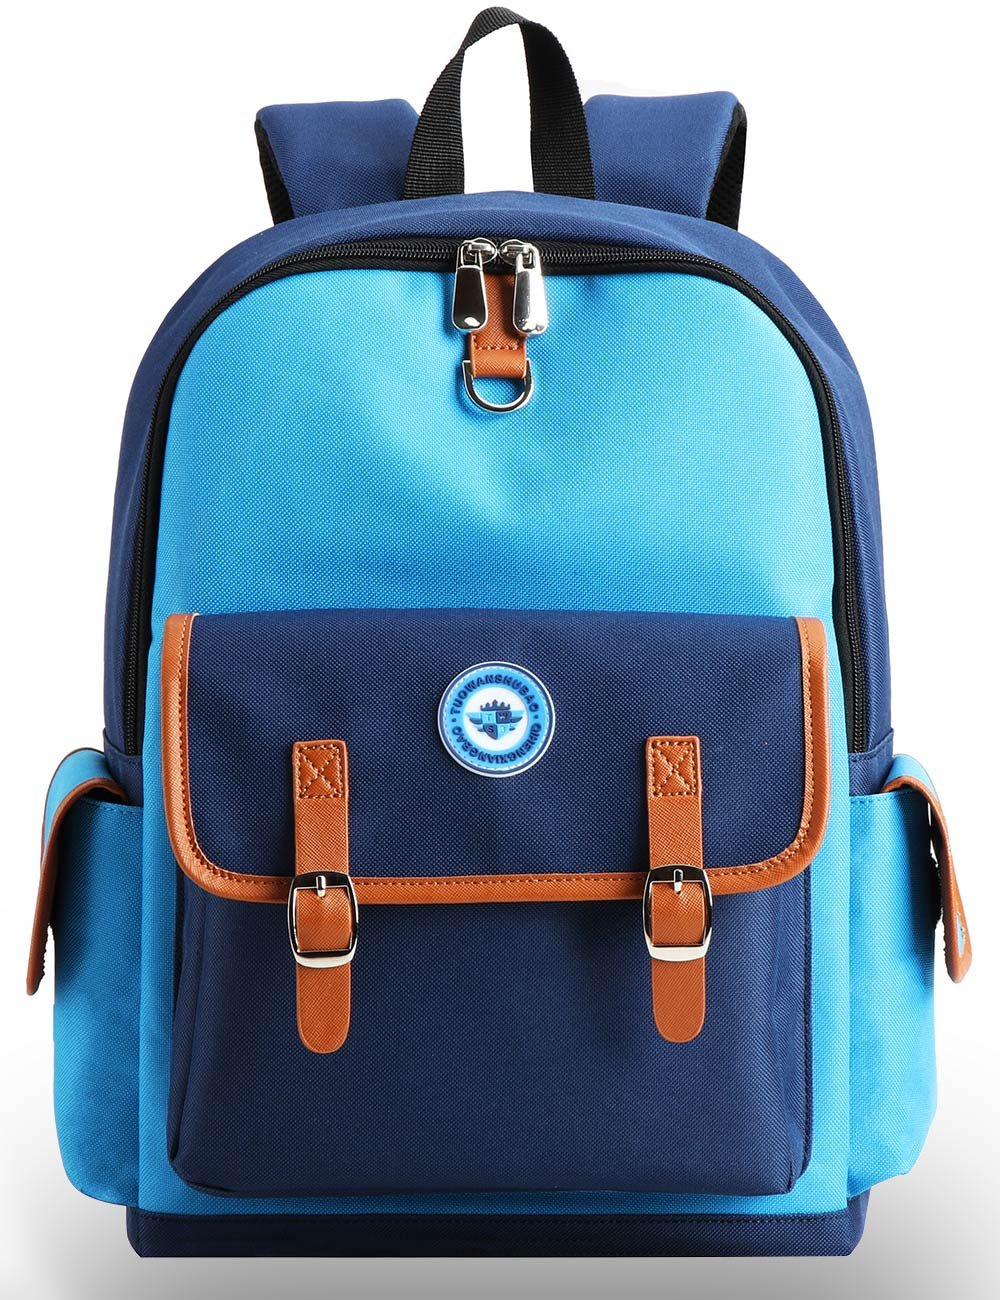 Kids Backpack Children Bookbag Preschool Kindergarten Elementary School Travel Bag for Girls Boys(14182 small blue)